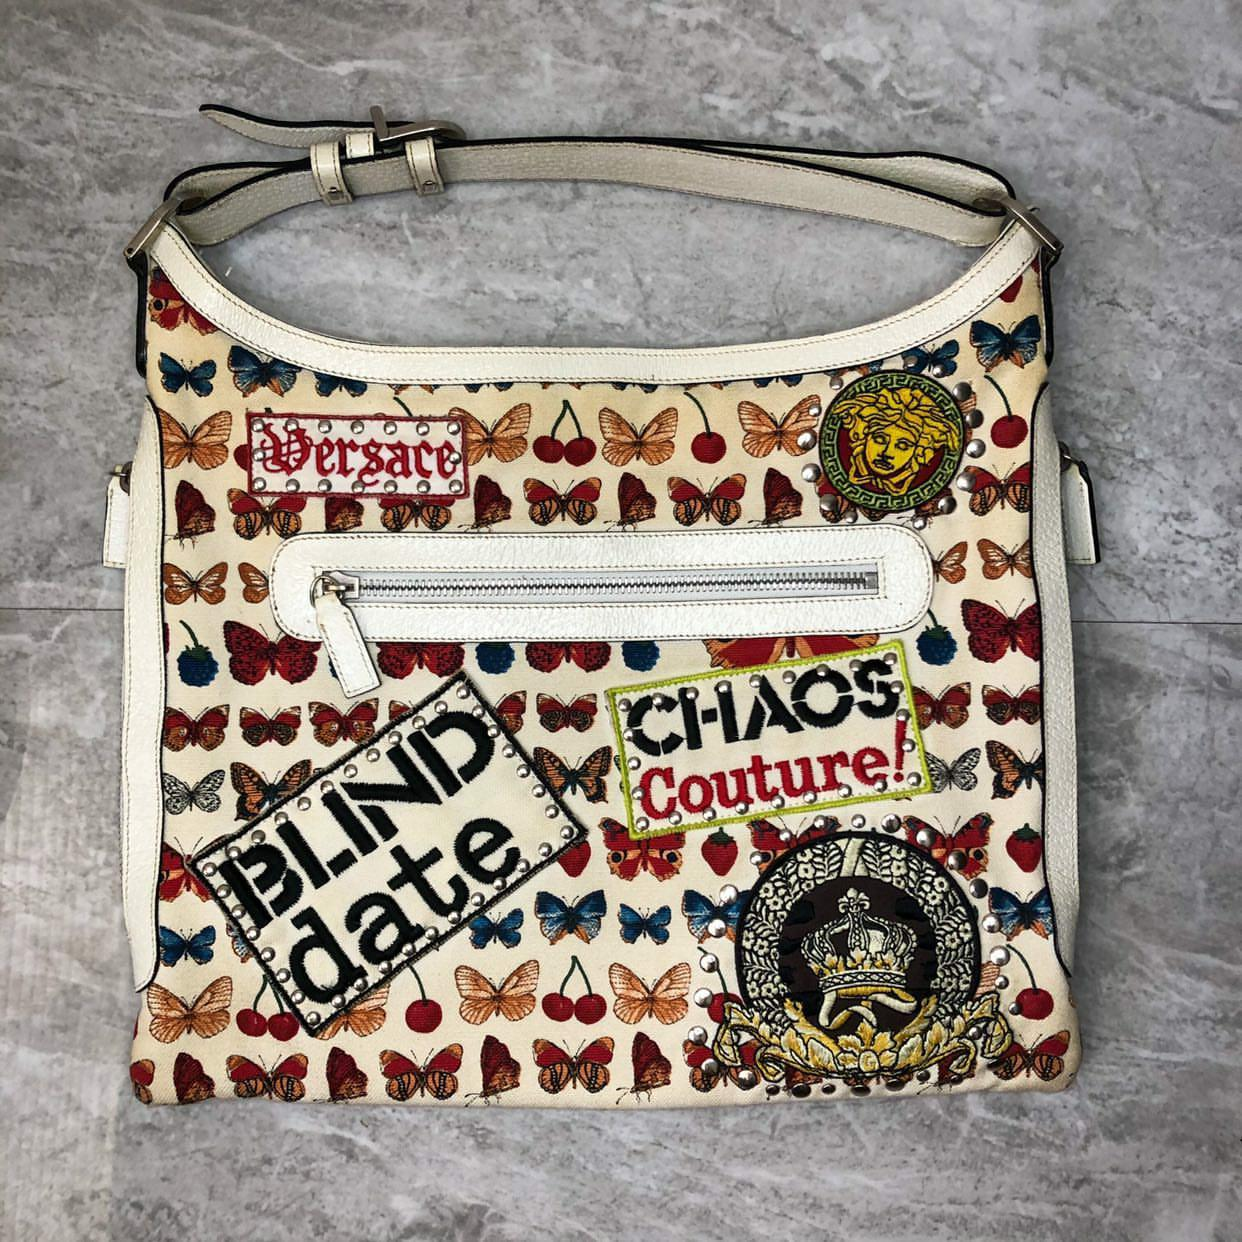 Versace Couture Bag